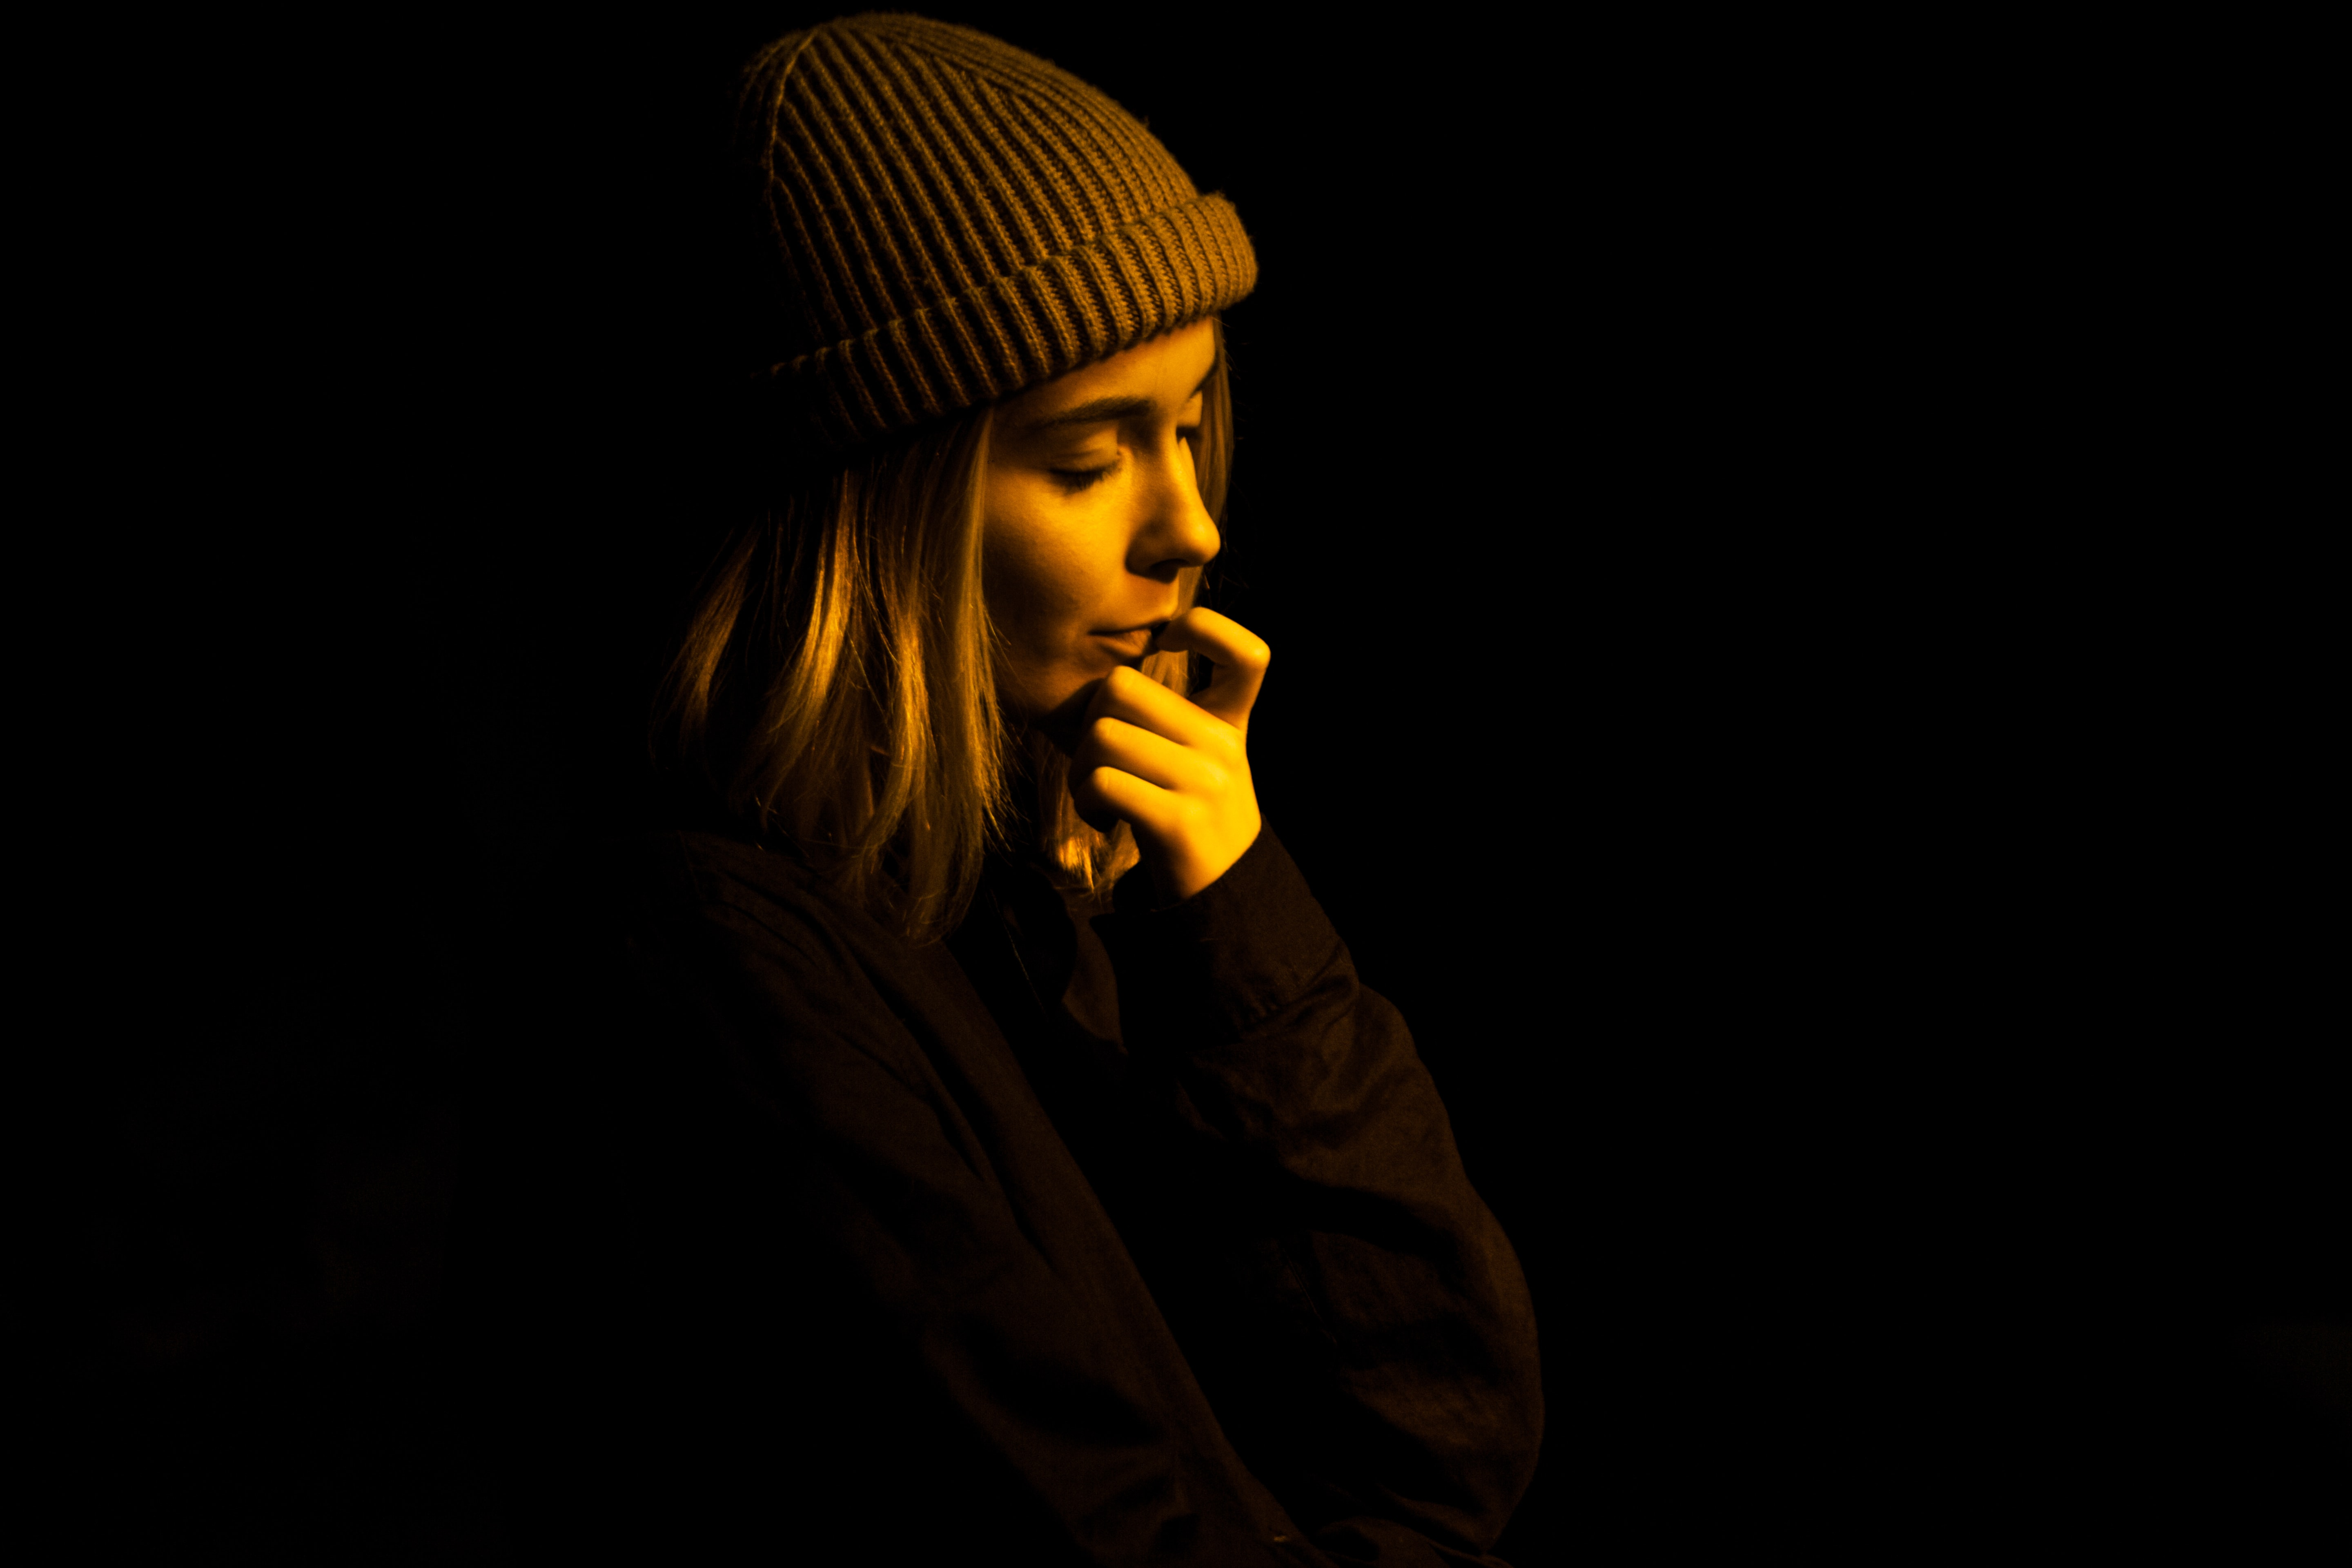 woman wearing gray knit cap on focus photo